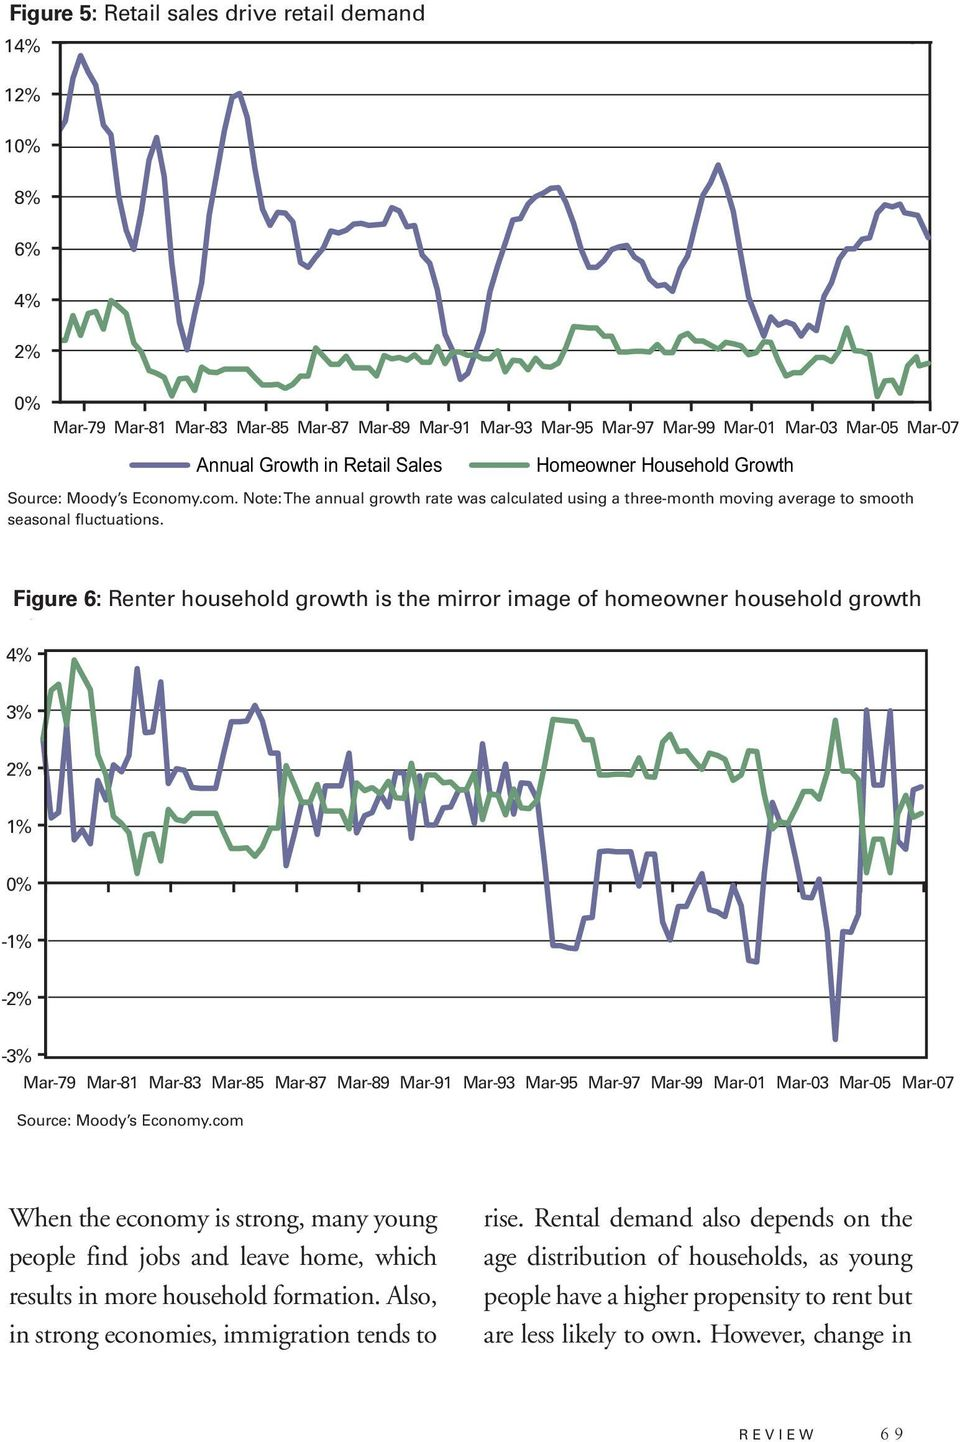 Figure 6: Renter household growth is the mirror image of homeowner household growth 4% 3% 2% 1% -1% -2% -3% Mar-79 Mar-81 Mar-83 Mar-85 Mar-87 Mar-89 Mar-91 Mar-93 Mar-95 Mar-97 Mar-99 Mar-01 Mar-03